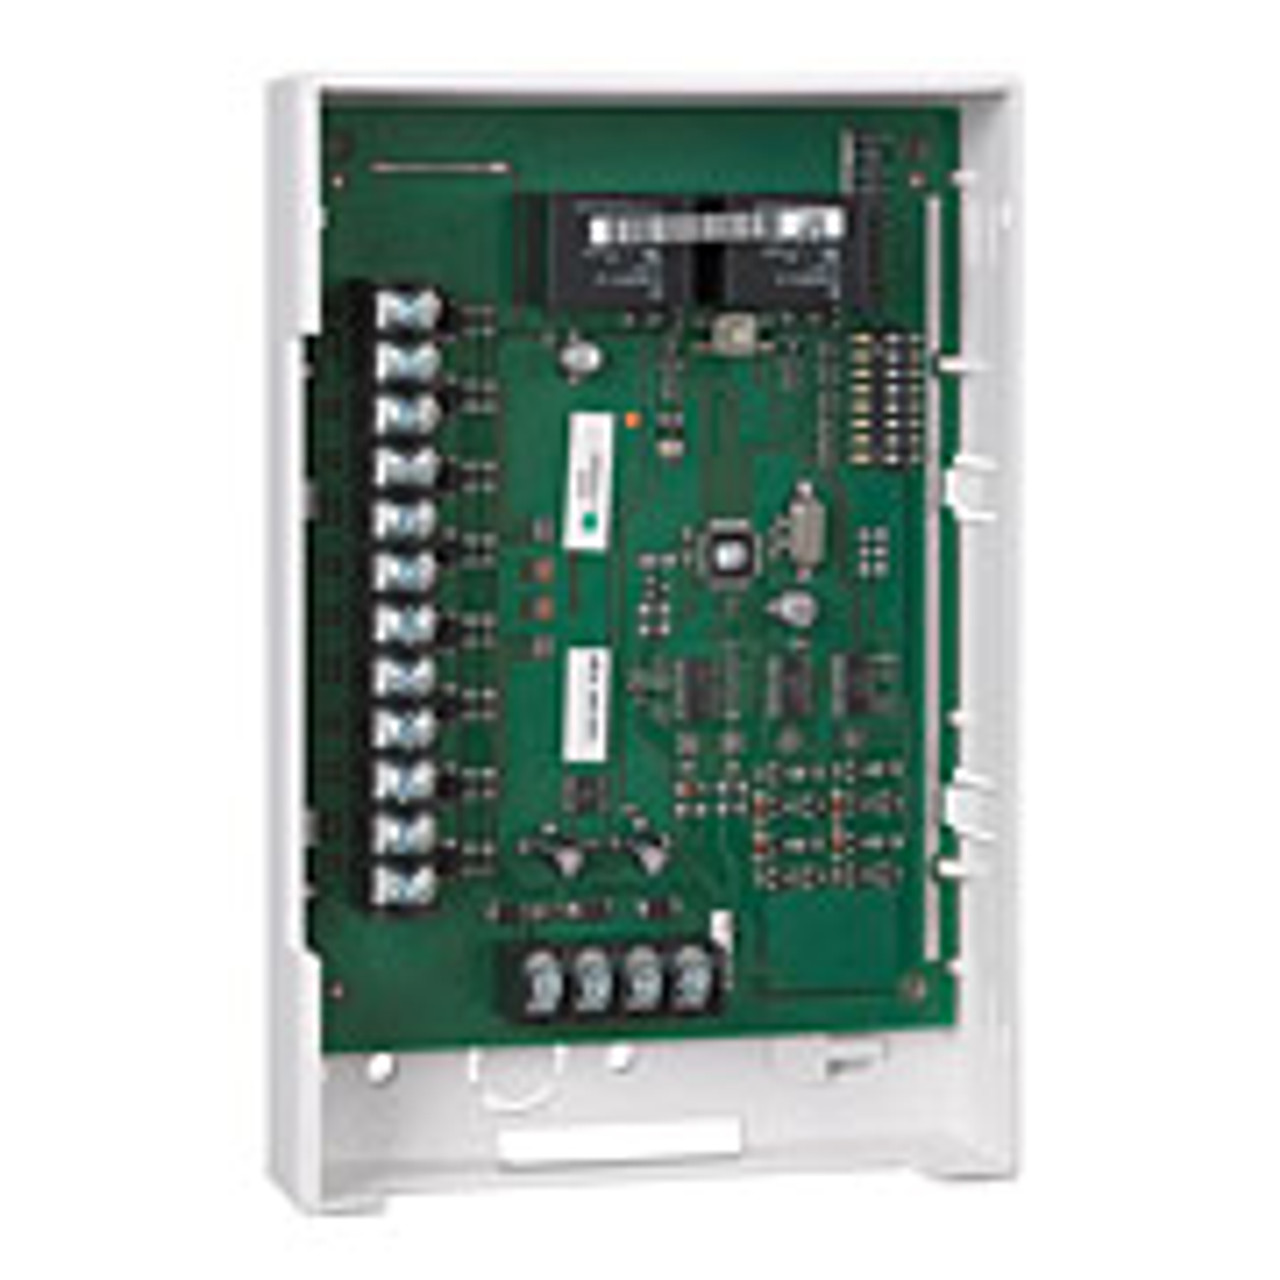 Honeywell 4229 Wired Zone Expander / Relay Board